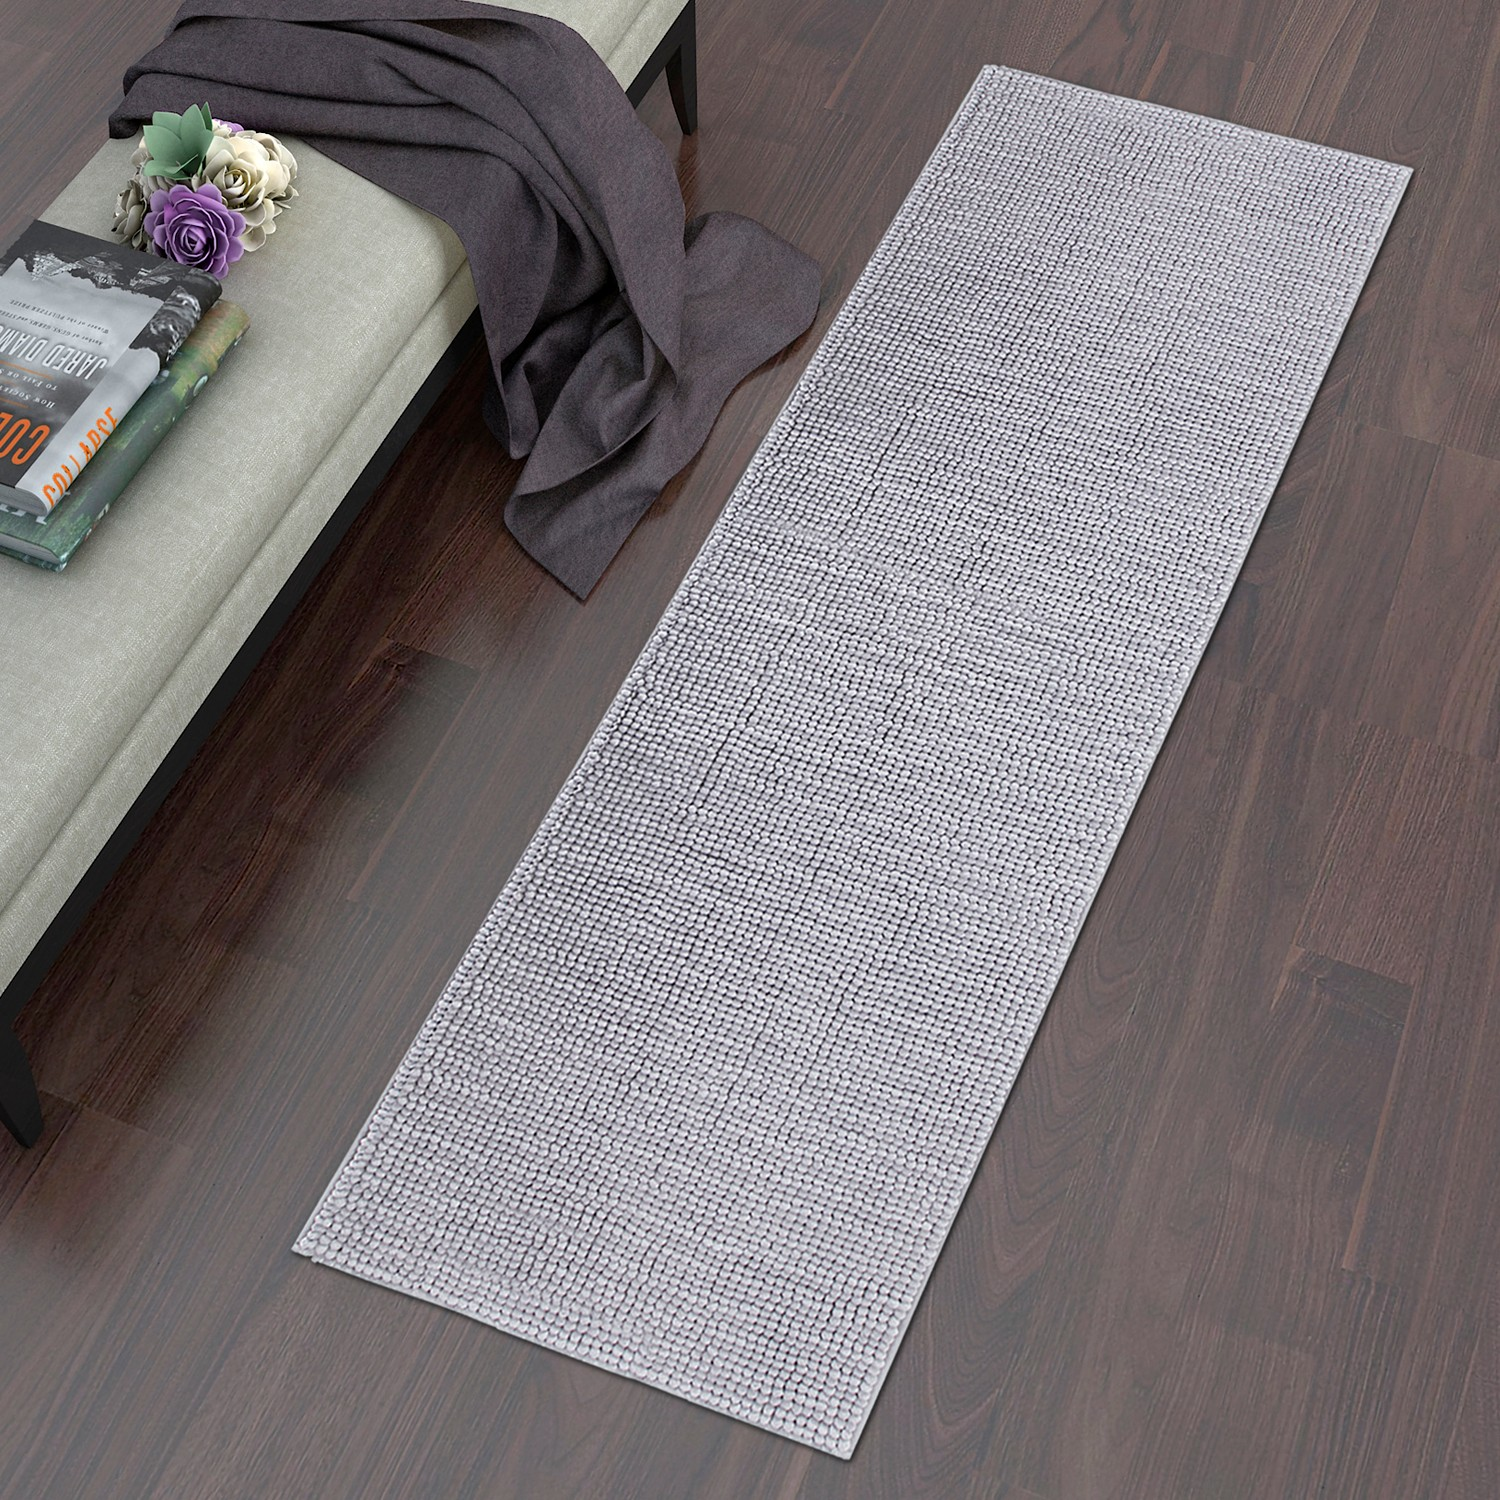 "Lifewit 70"" x 25"" Area Bathroom Mat Runner Rug Living Room Machine Washable Shag Rug Grey"